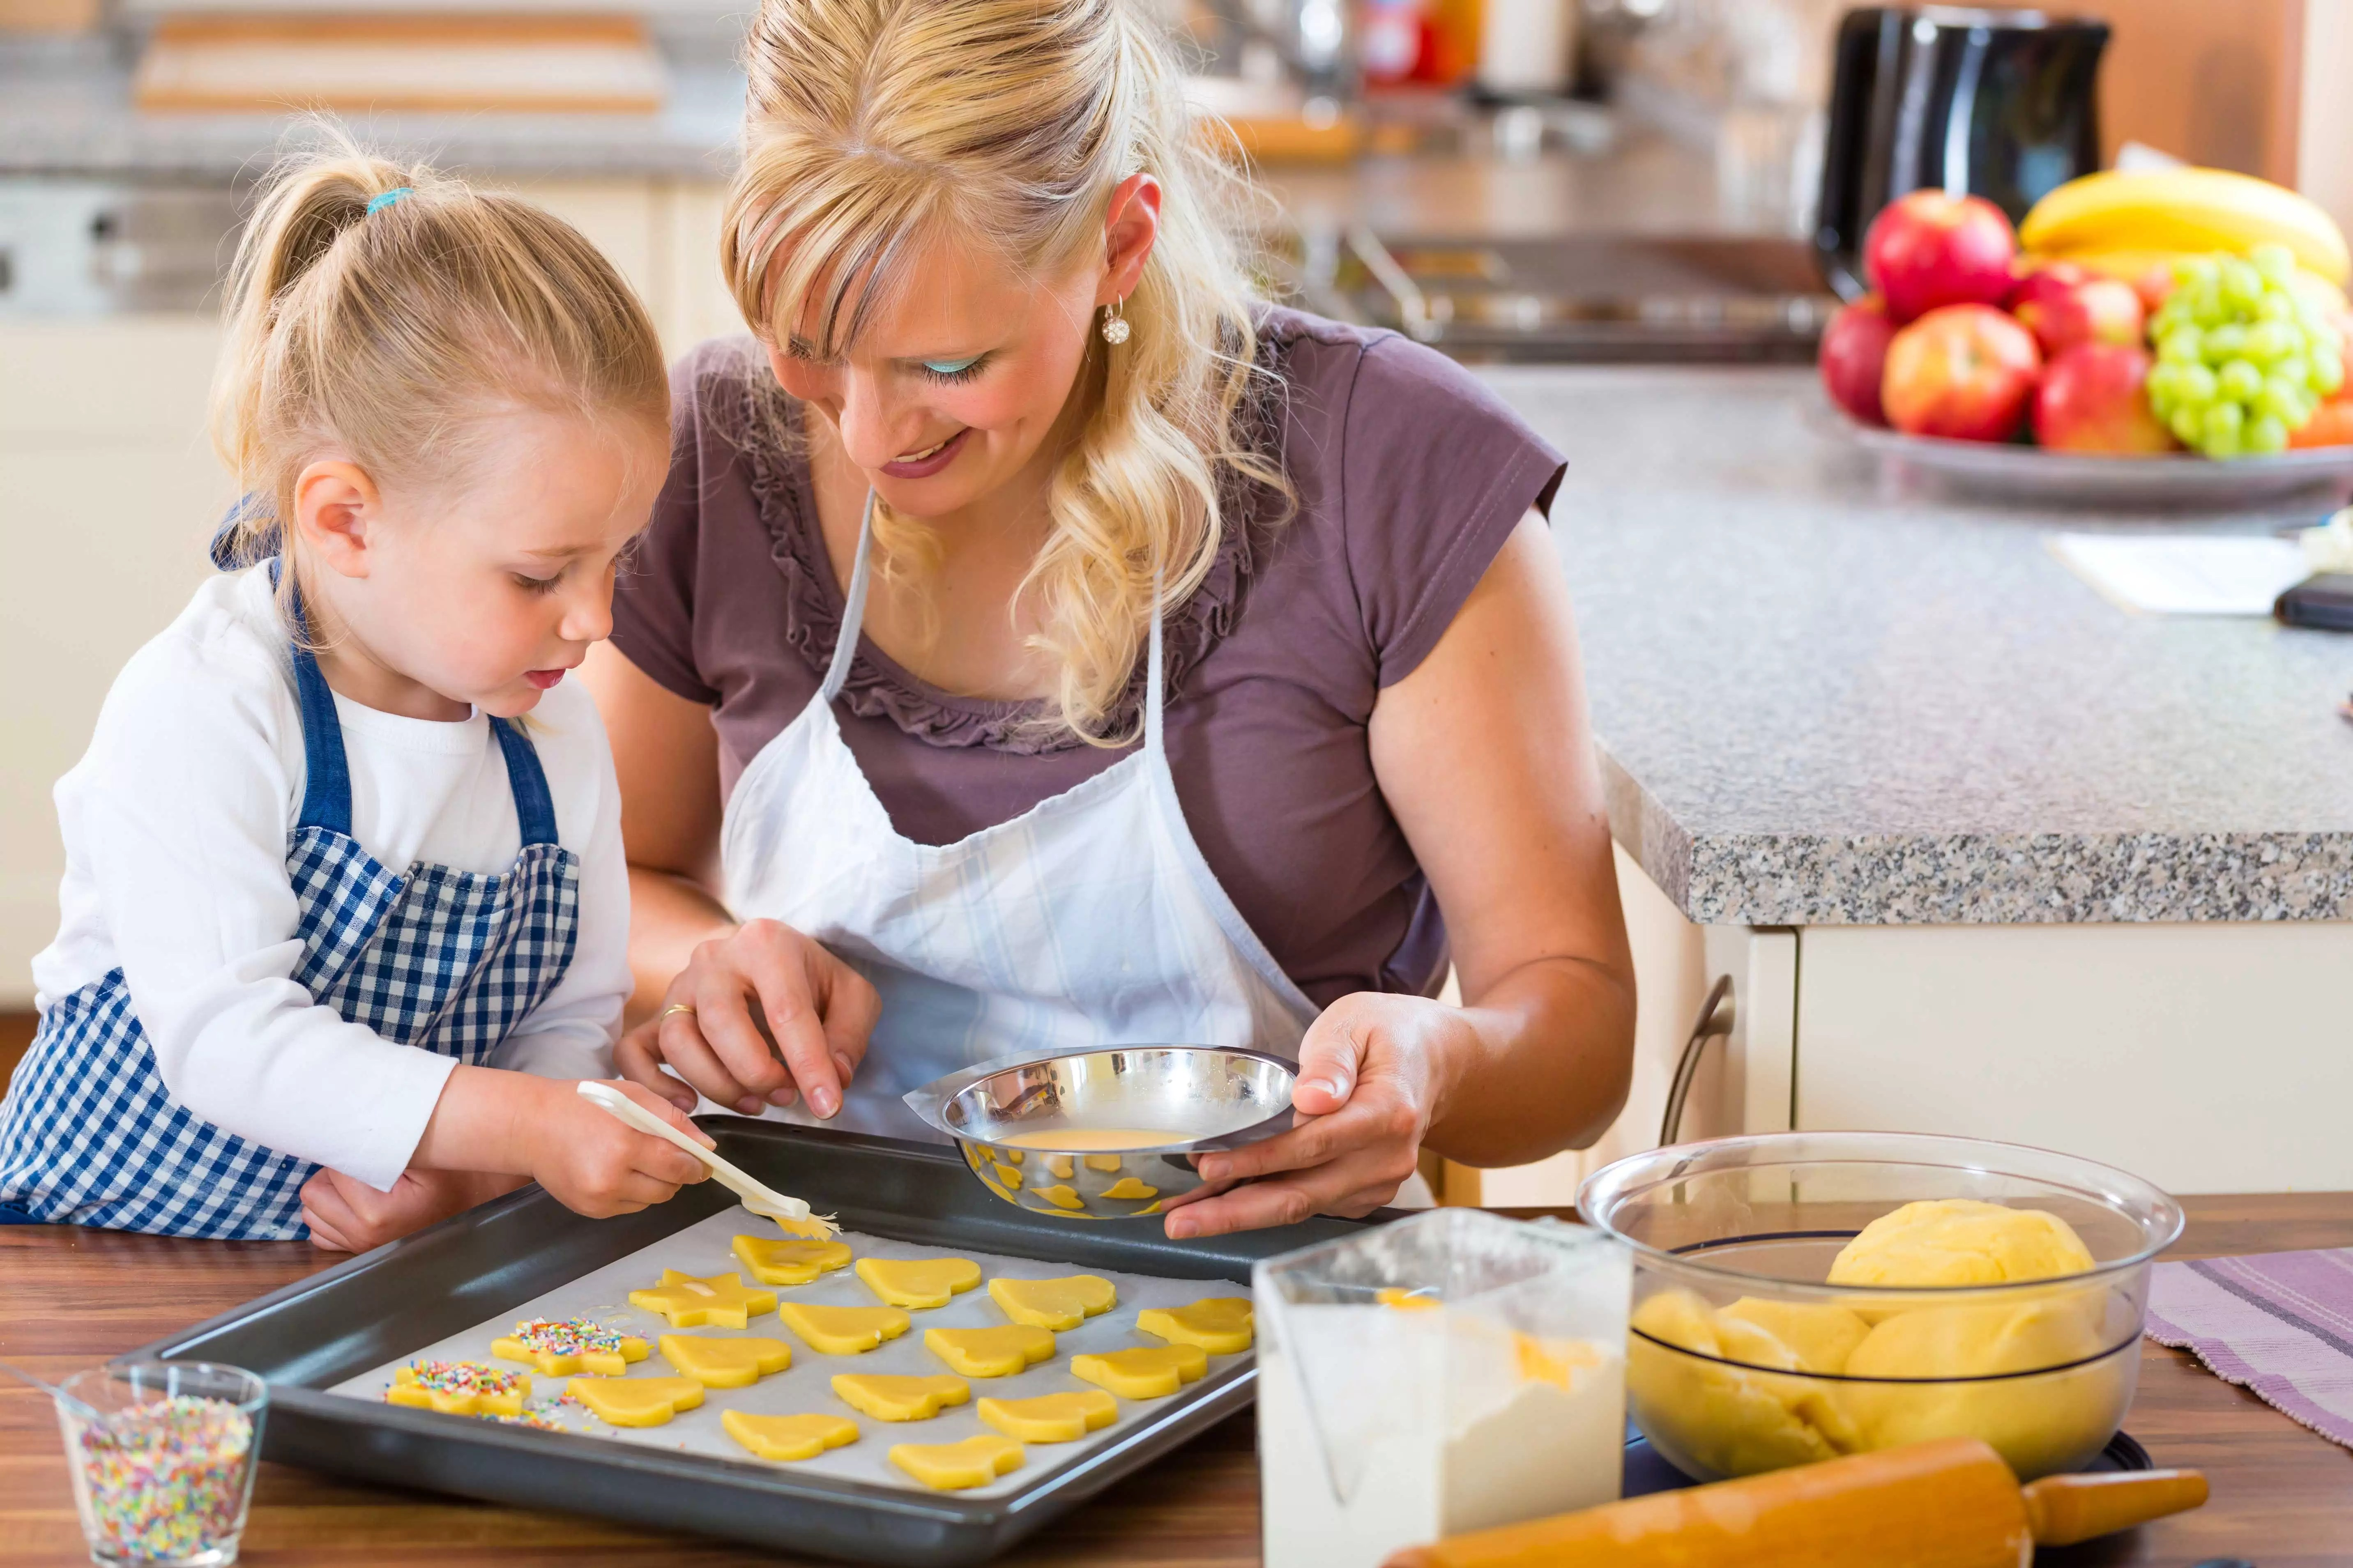 Why You Should Take Cooking Classes With Your Kids